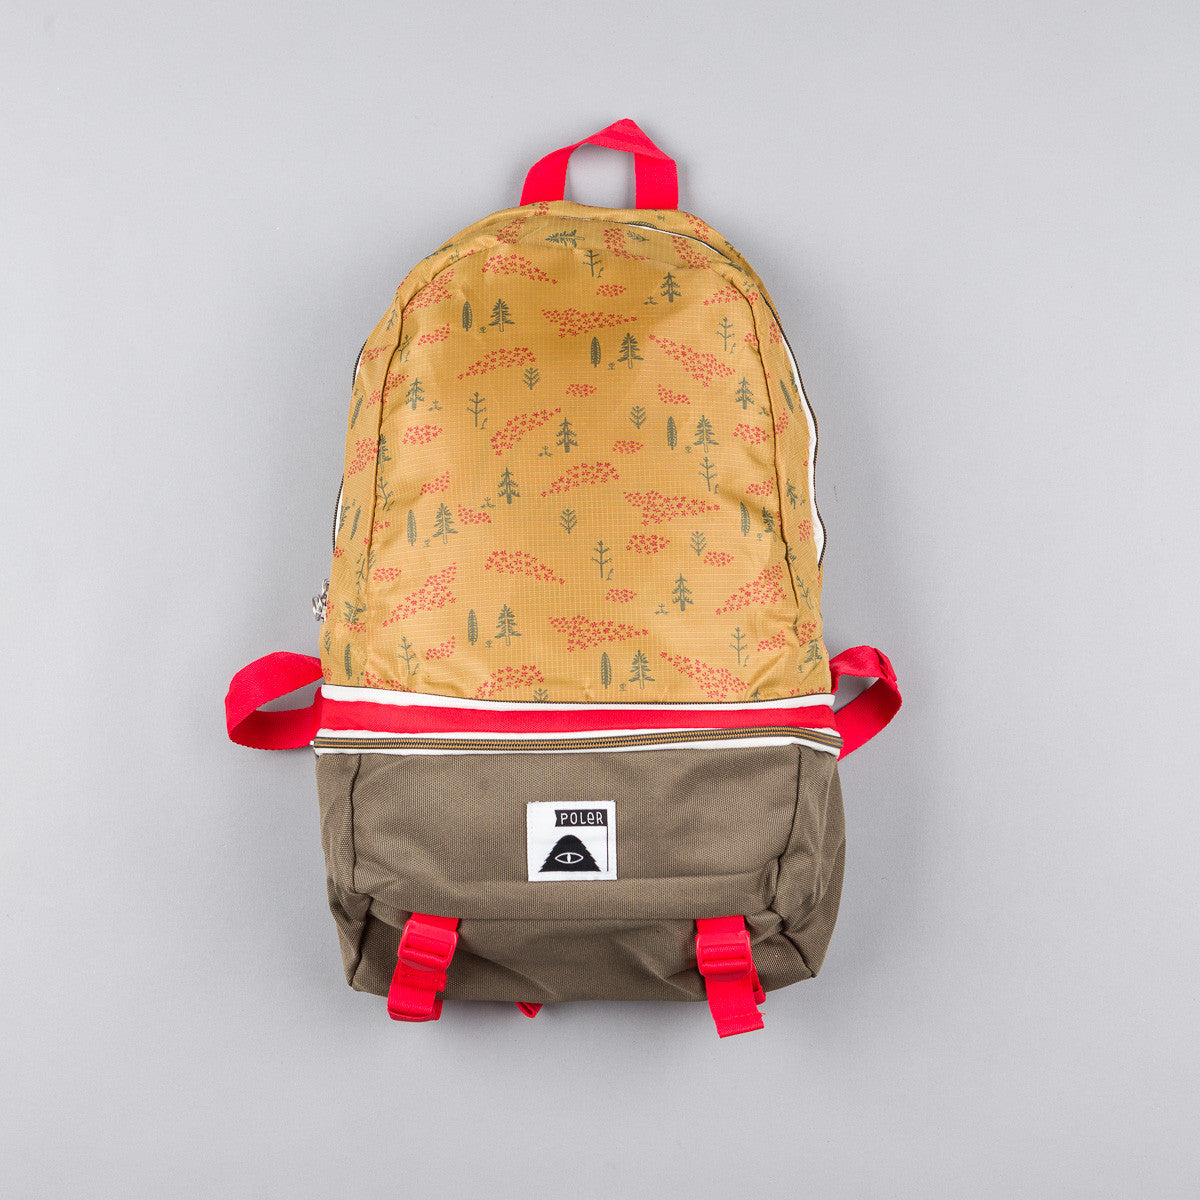 Poler Tourist Pack Bag - Almond Forestry Print